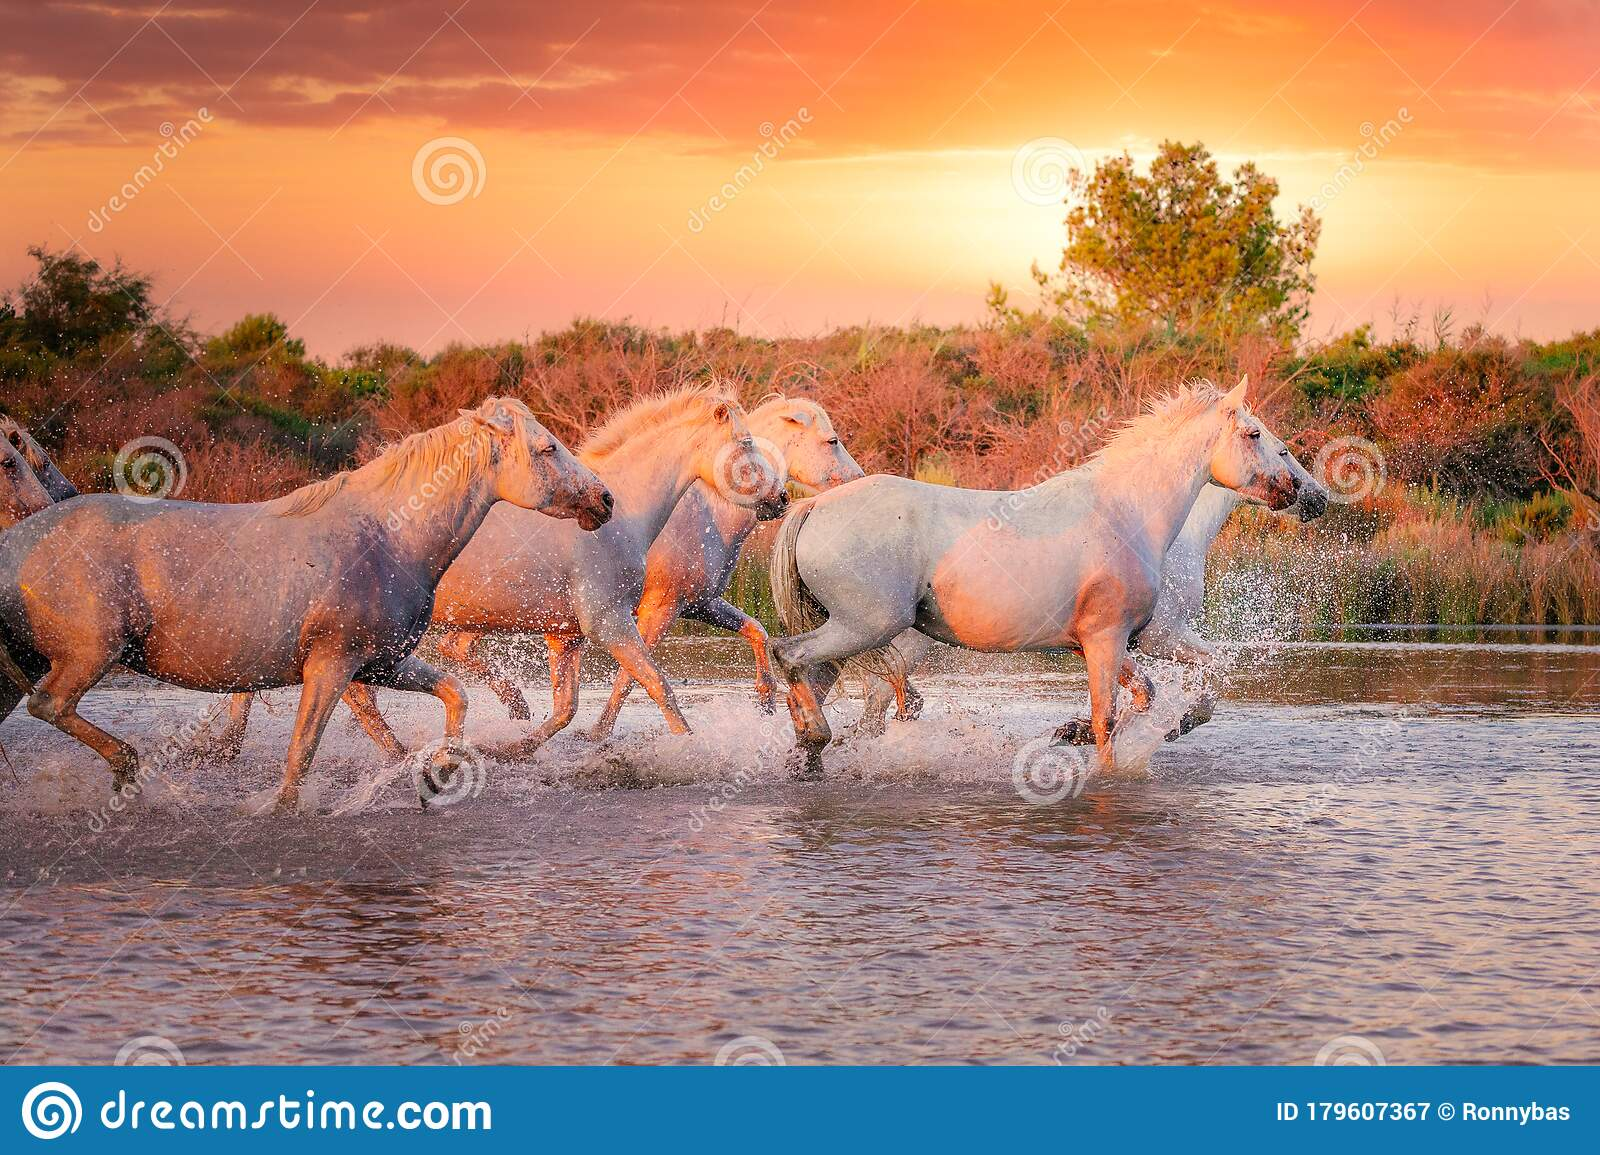 6 798 Horses Running Wild Photos Free Royalty Free Stock Photos From Dreamstime